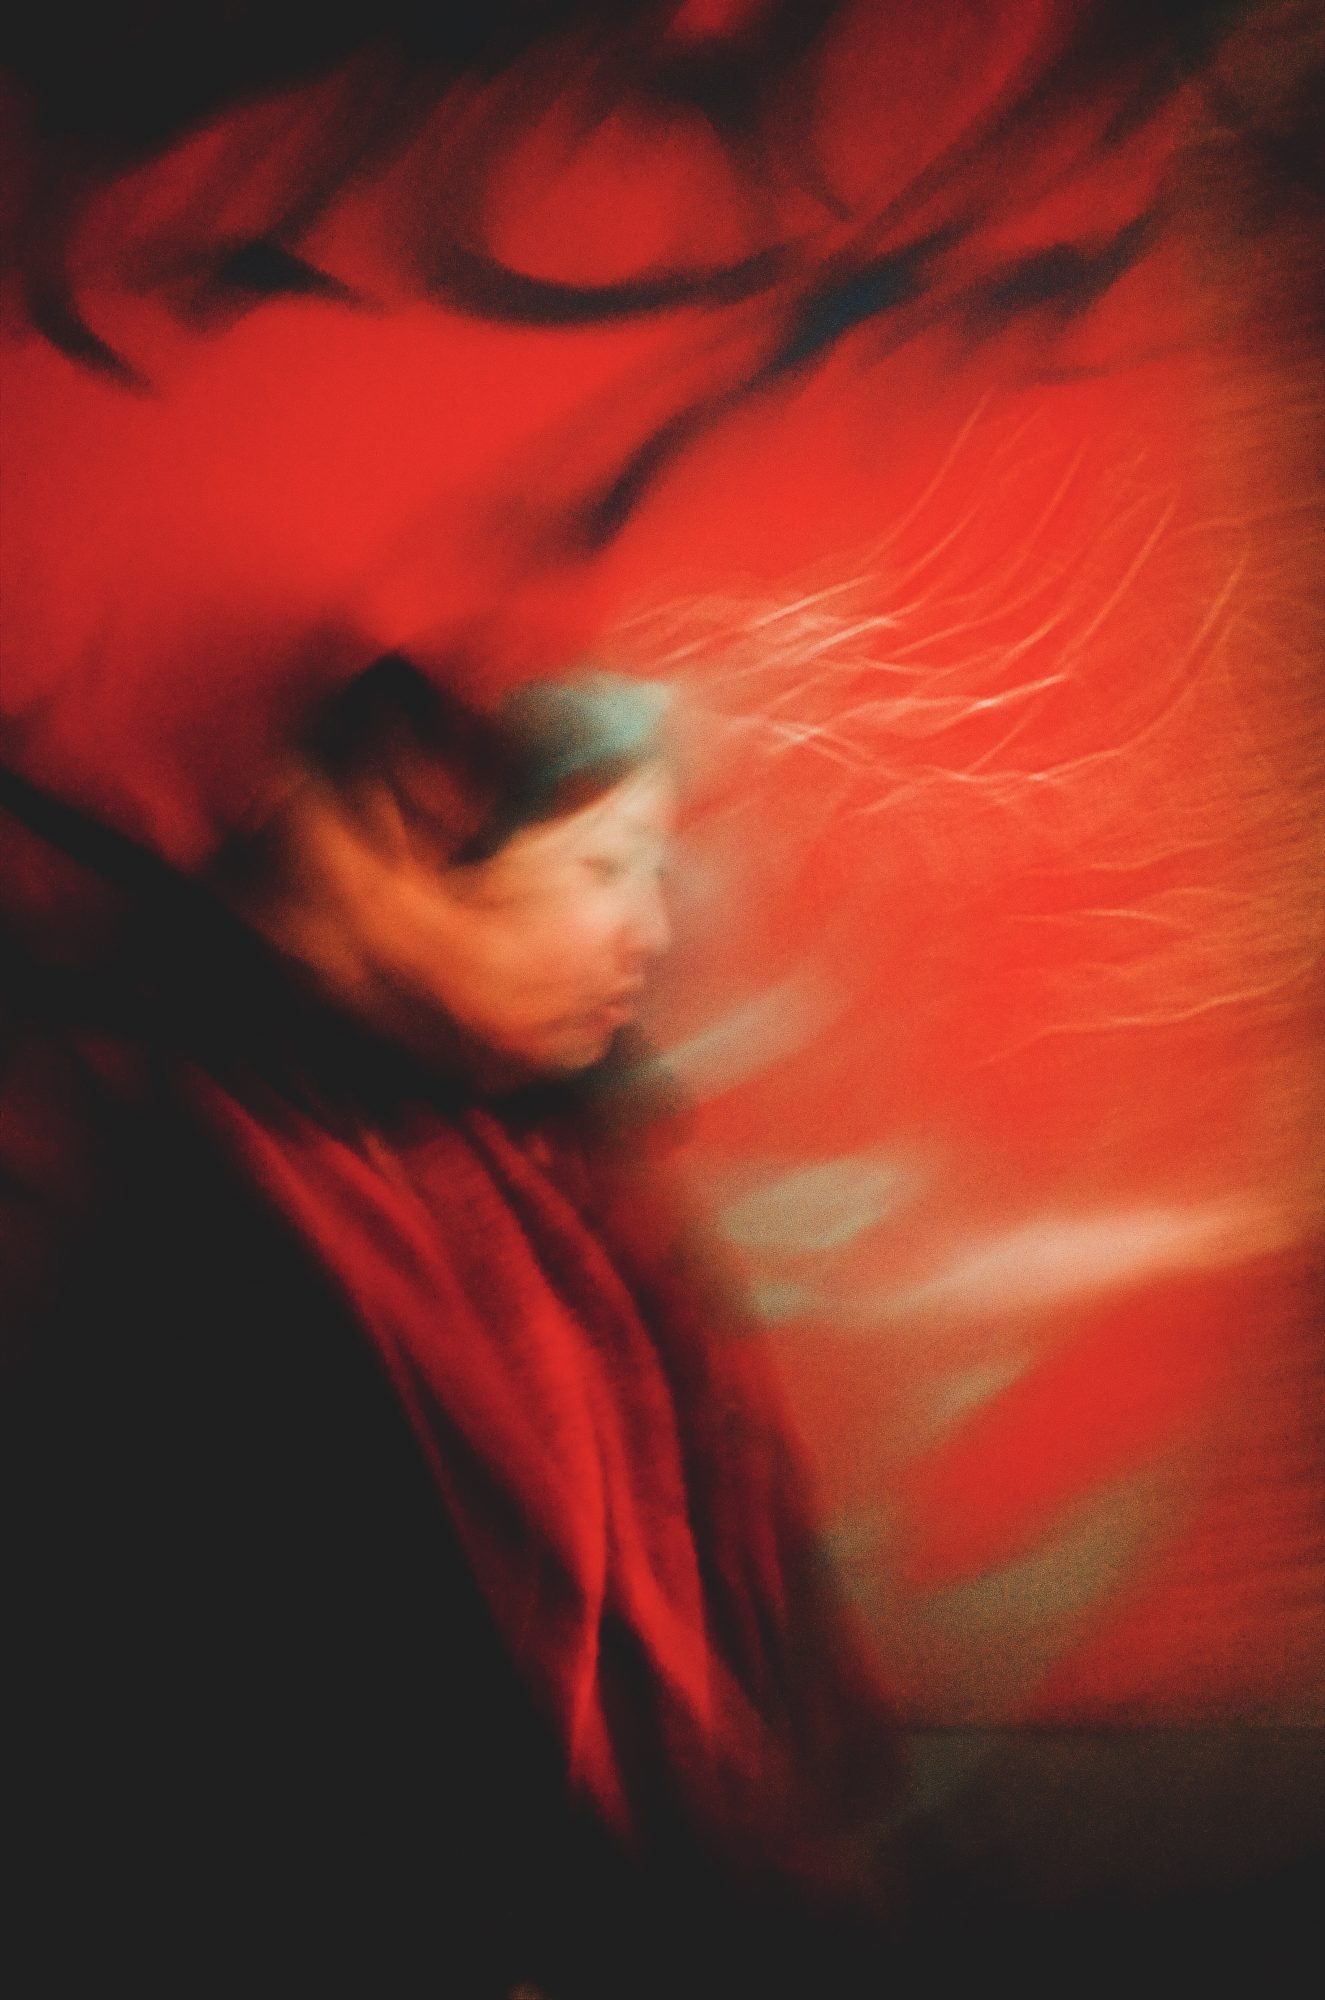 Blurry Cindy walking, with red background, and a touch of green. Lisbon, 2018